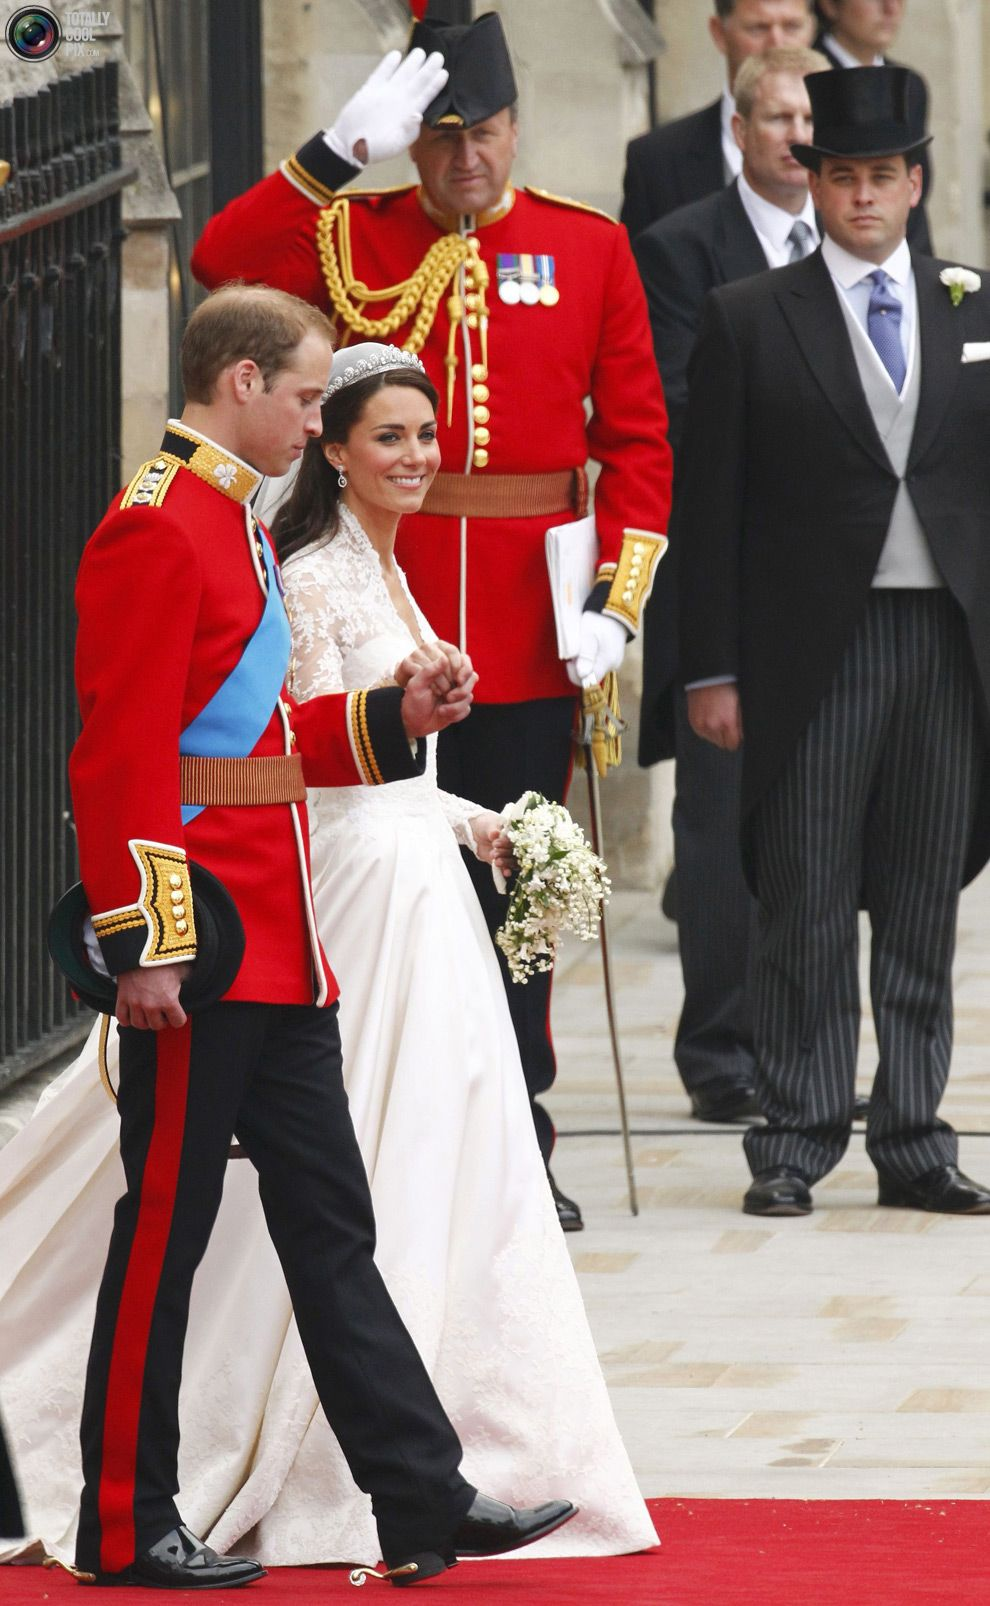 ROYAL WEDDING: PRINCE WILLIAM AND KATE MIDDLETON | Westminster ...